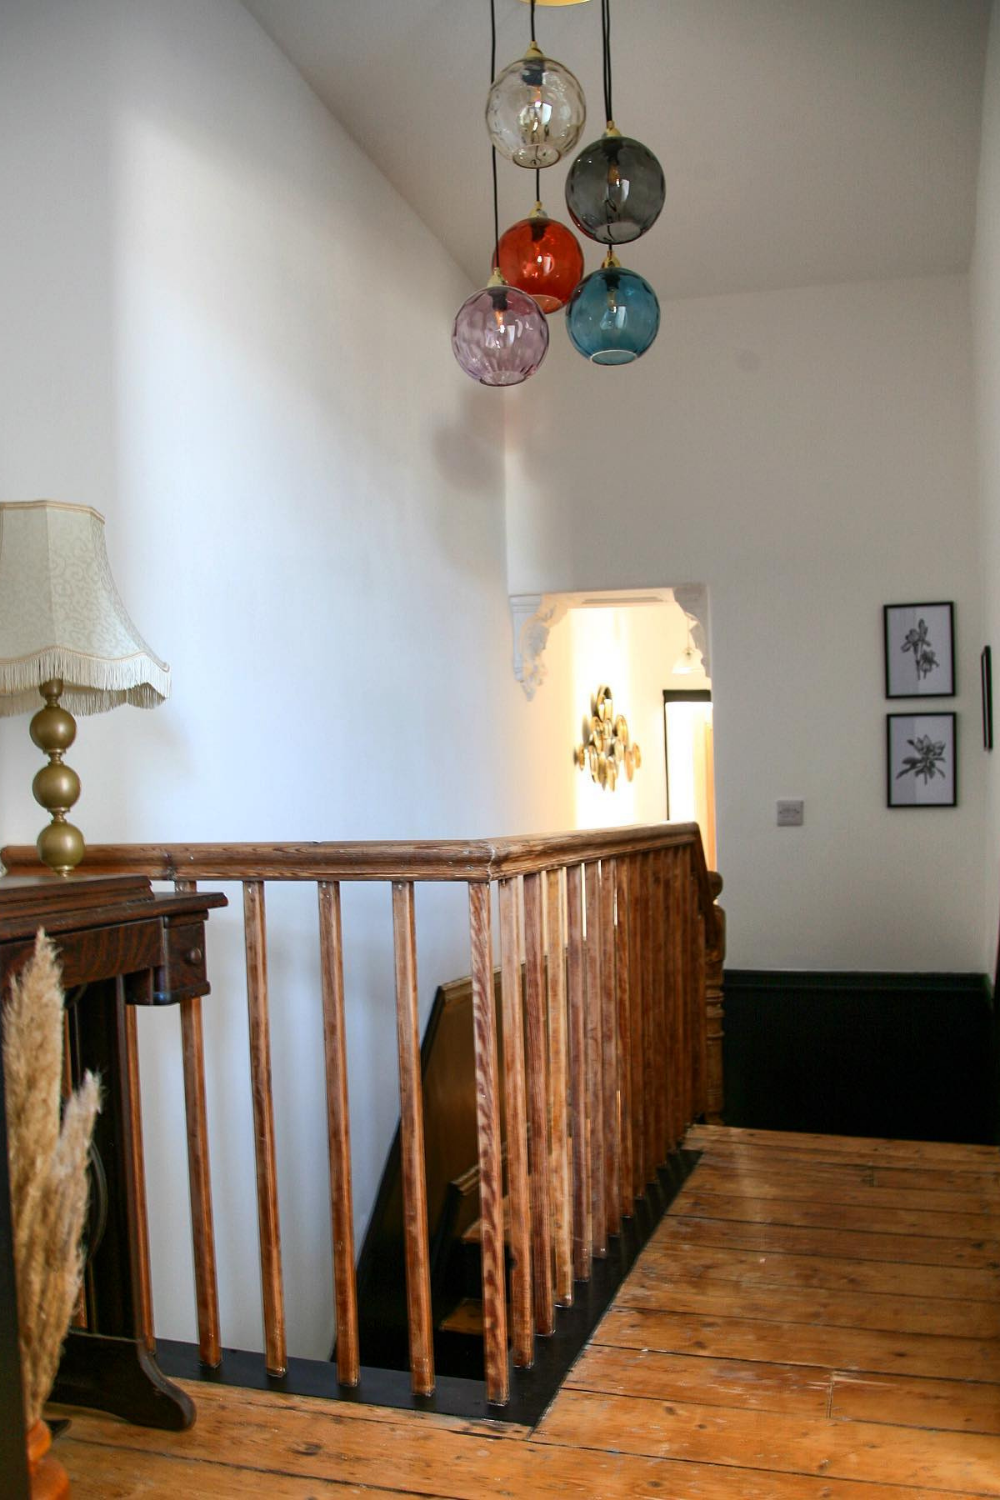 10 DIY Projects in Lockdown - landing area with wooden floorboards and a light fitting showing five glass light shades against white bare walls.